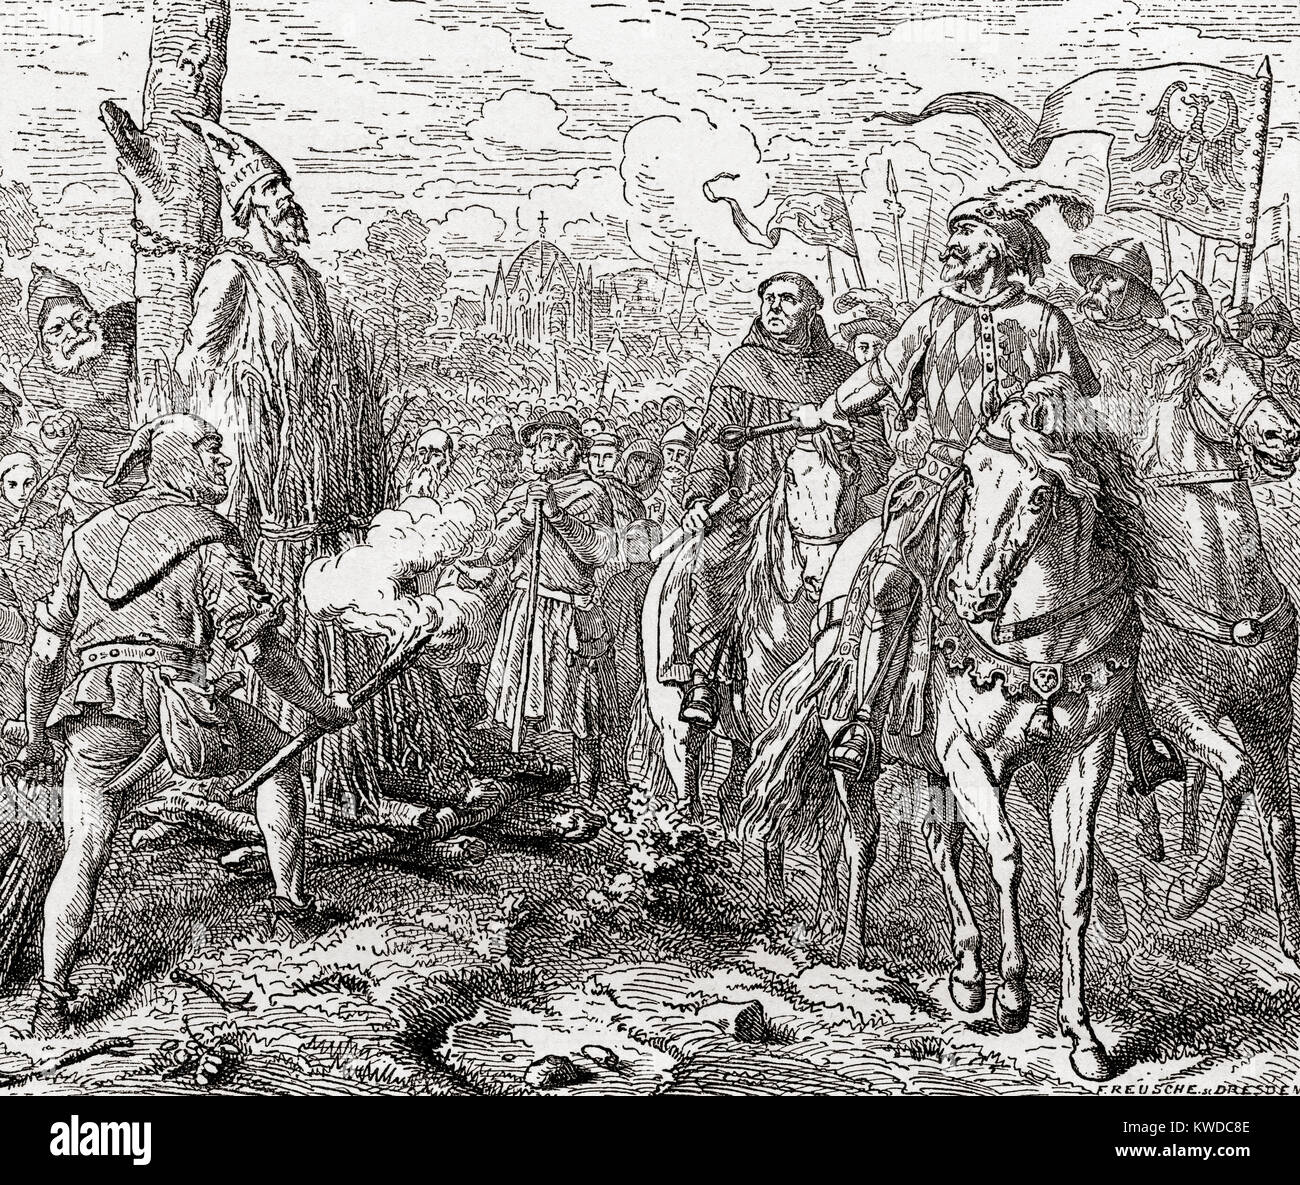 Jan Hus at the stake summoned to recant. Jan Hus , c. 1369 – 1415, aka John Hus or John Huss.  Czech theologian, - Stock Image